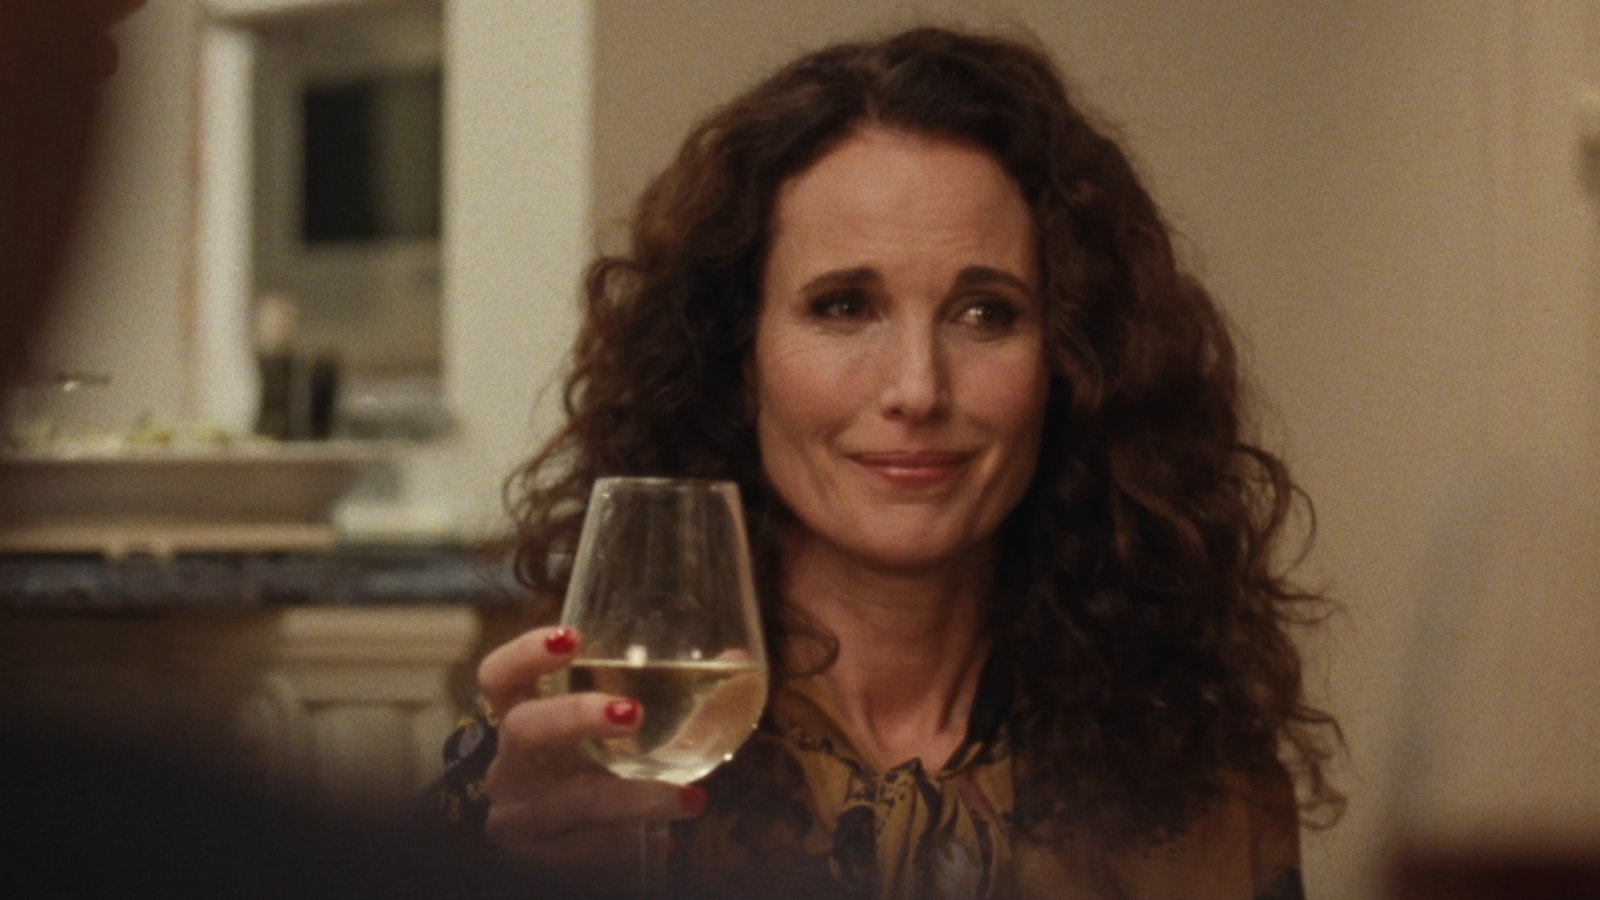 Andie Macdowell Nude In Love After Love upcoming andie macdowell new movies / tv shows (2019, 2020)